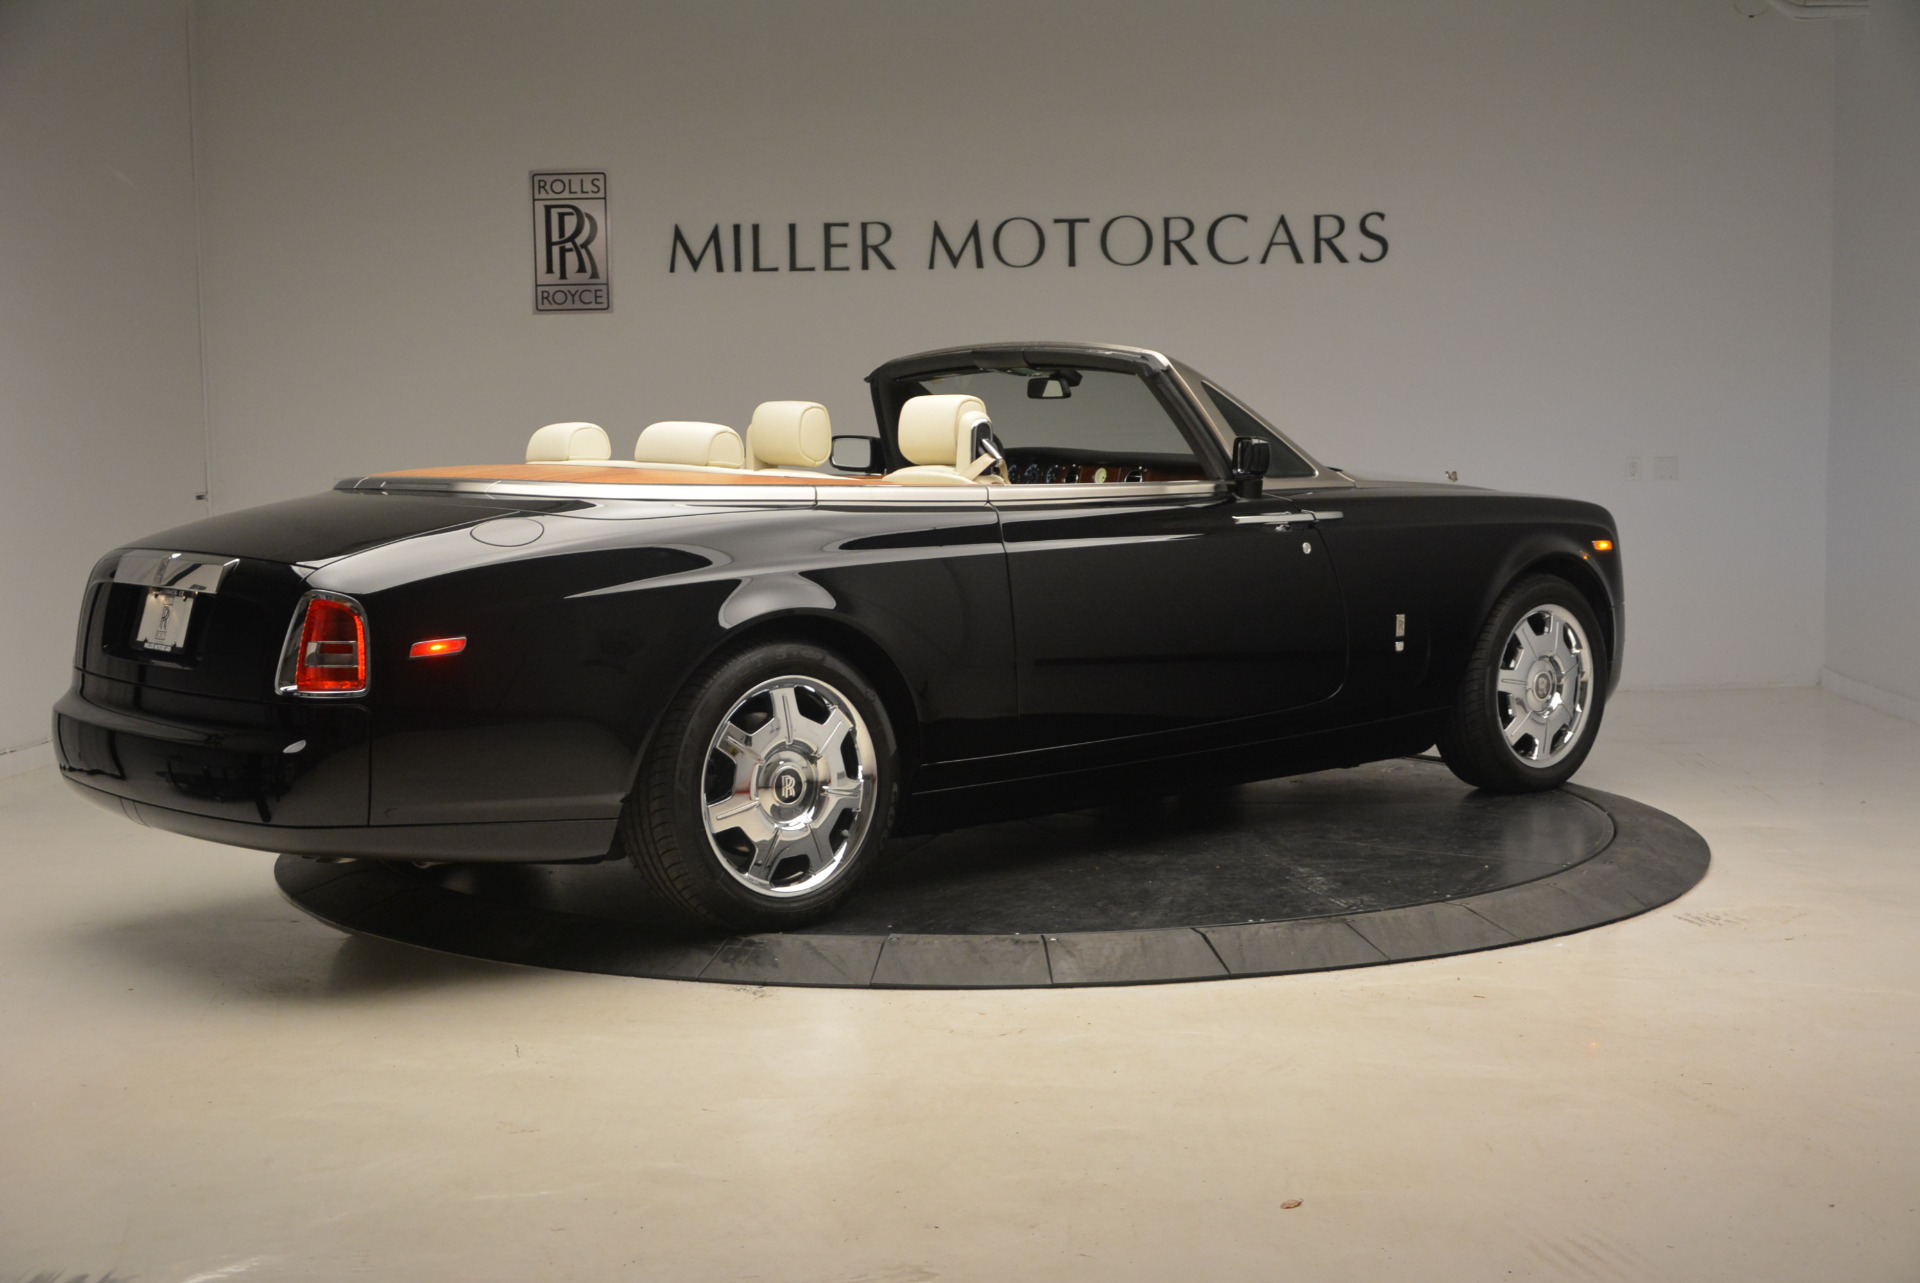 Used 2009 Rolls-Royce Phantom Drophead Coupe  For Sale In Greenwich, CT 1792_p9